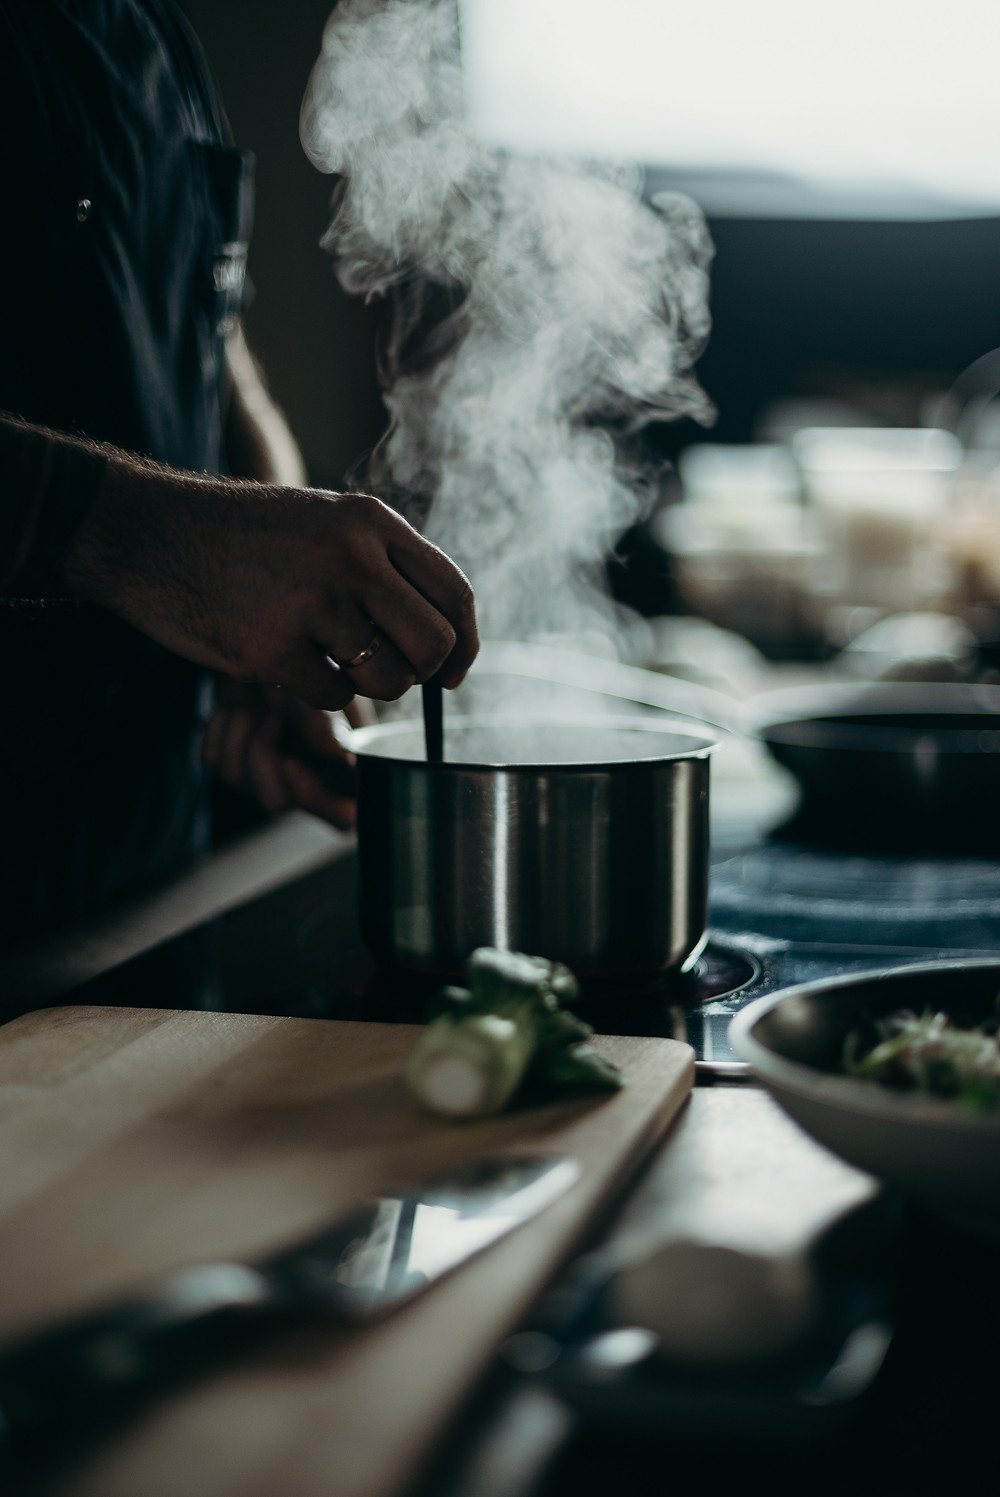 person stirring a steaming pot on a stove, a knife on a cutting board in the foreground